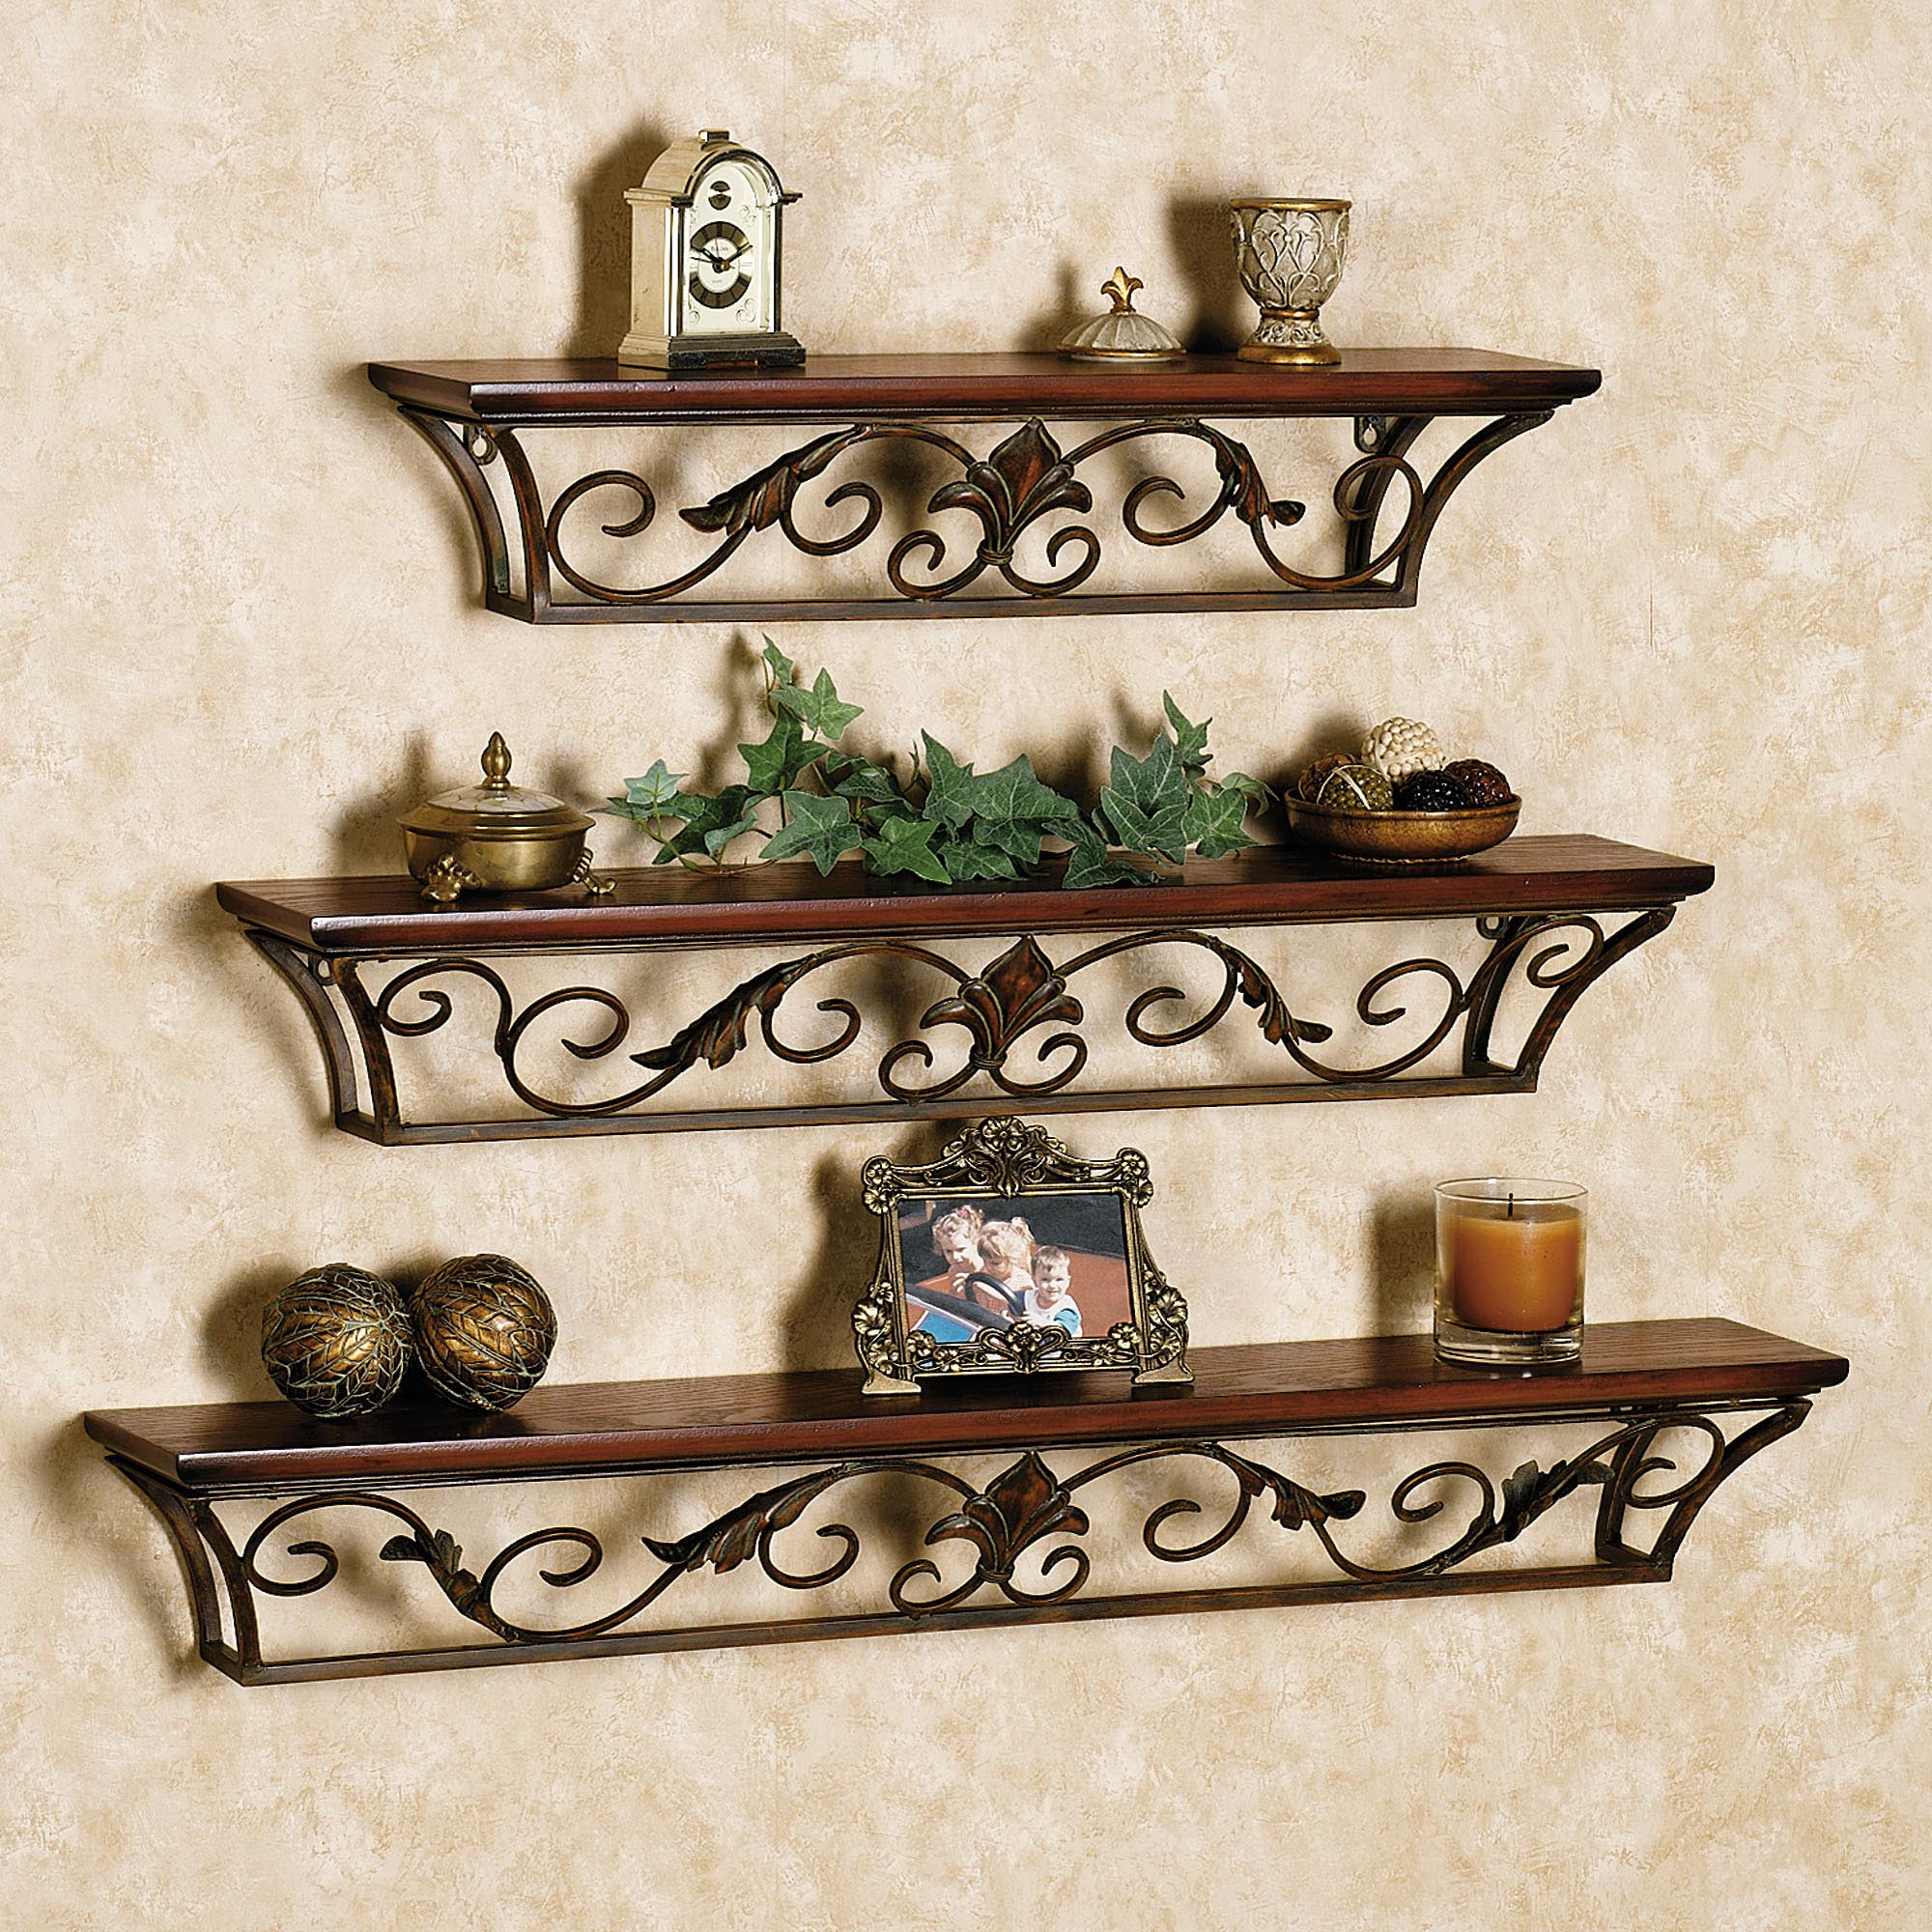 Pictures Of Wall Shelves Small Decorative Wall Shelves Best Decor Things